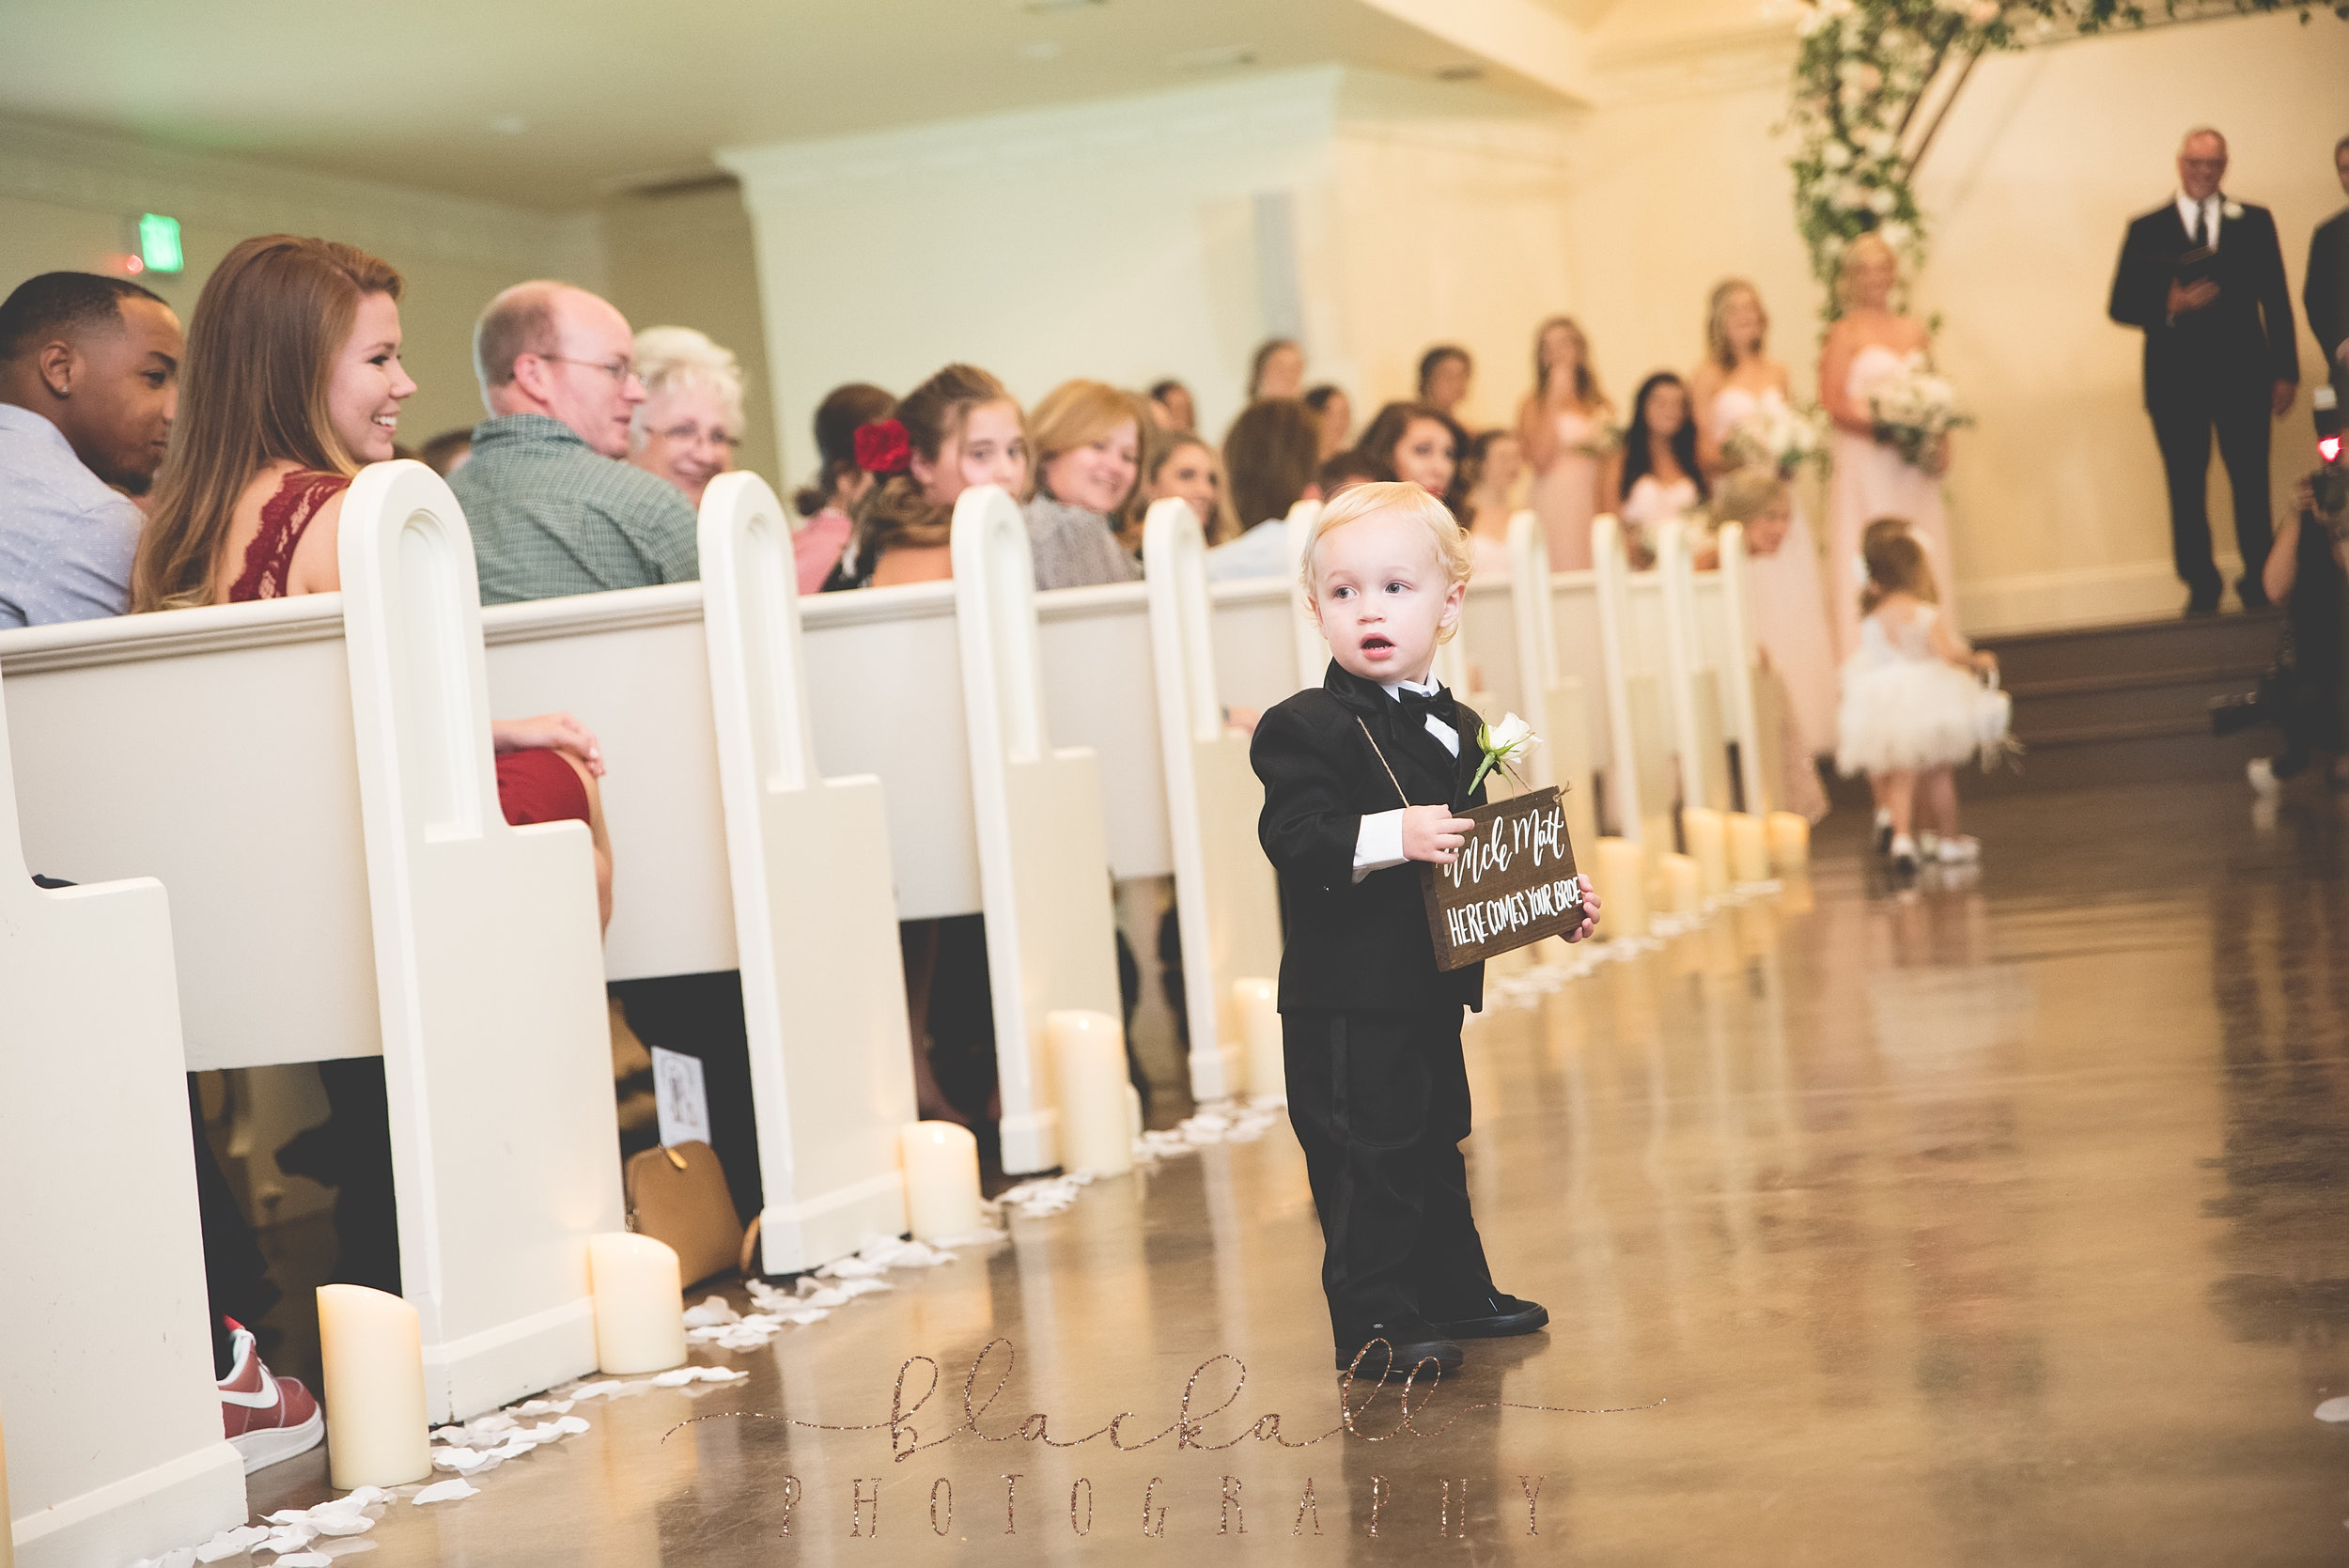 WEDDING_BlackallPhotography_23.JPG